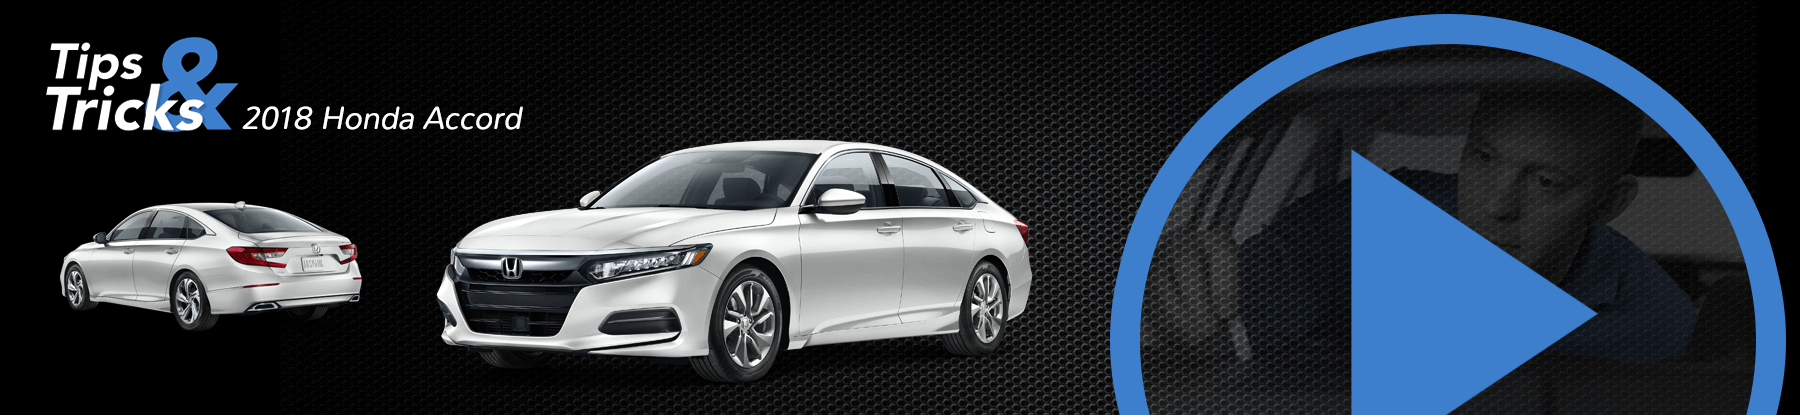 2018 Honda Accord Tips and Tricks